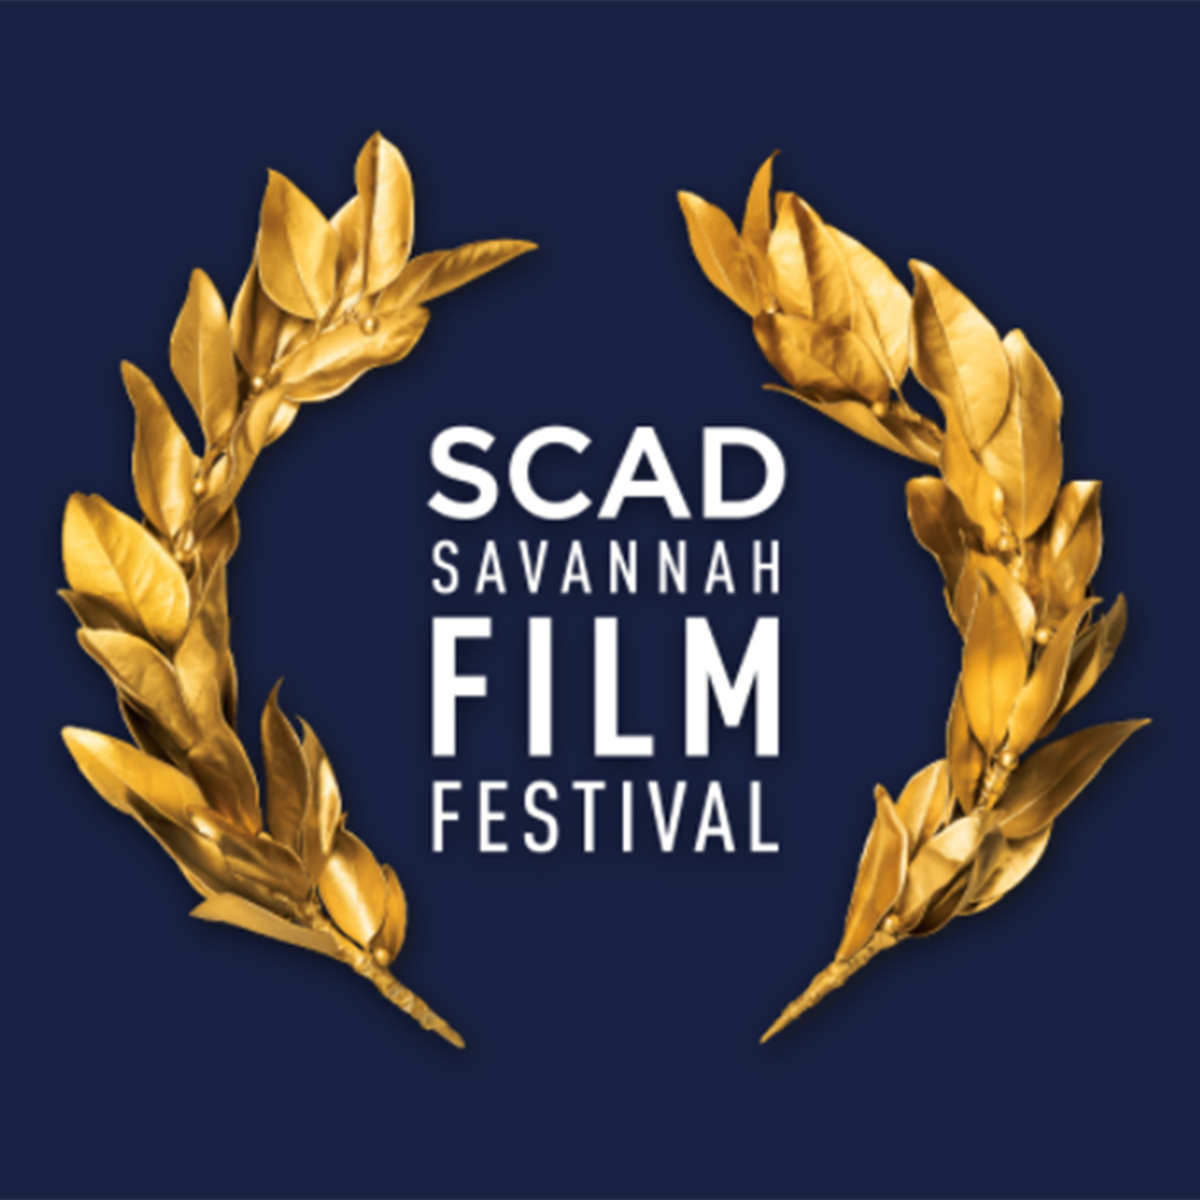 SCAD 3.png